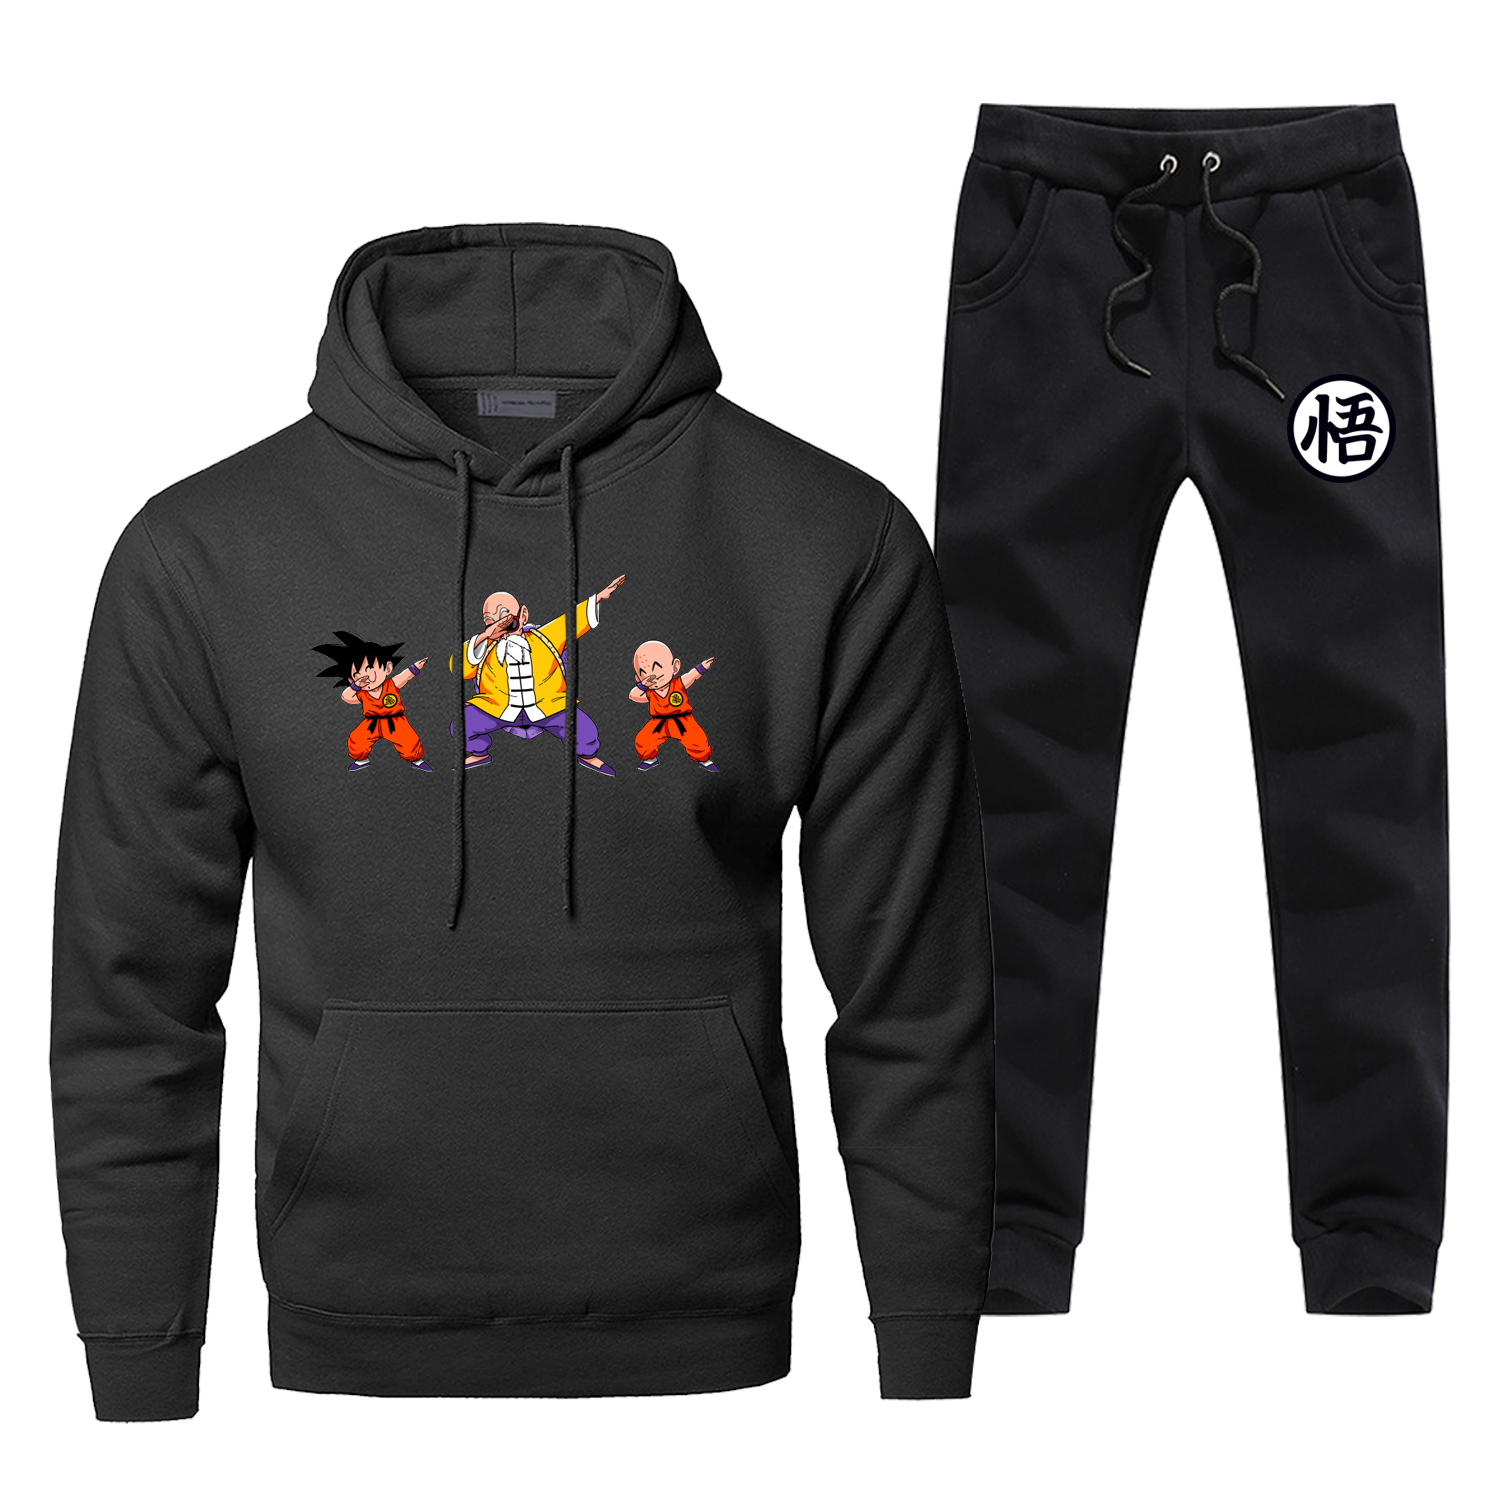 Dragon Ball Z Japanese Anime Saiyan Sweatshirt Hoodies+pants Two Piece Sets Men Hip Hop Sportswear Winter Harajuku Streetwear